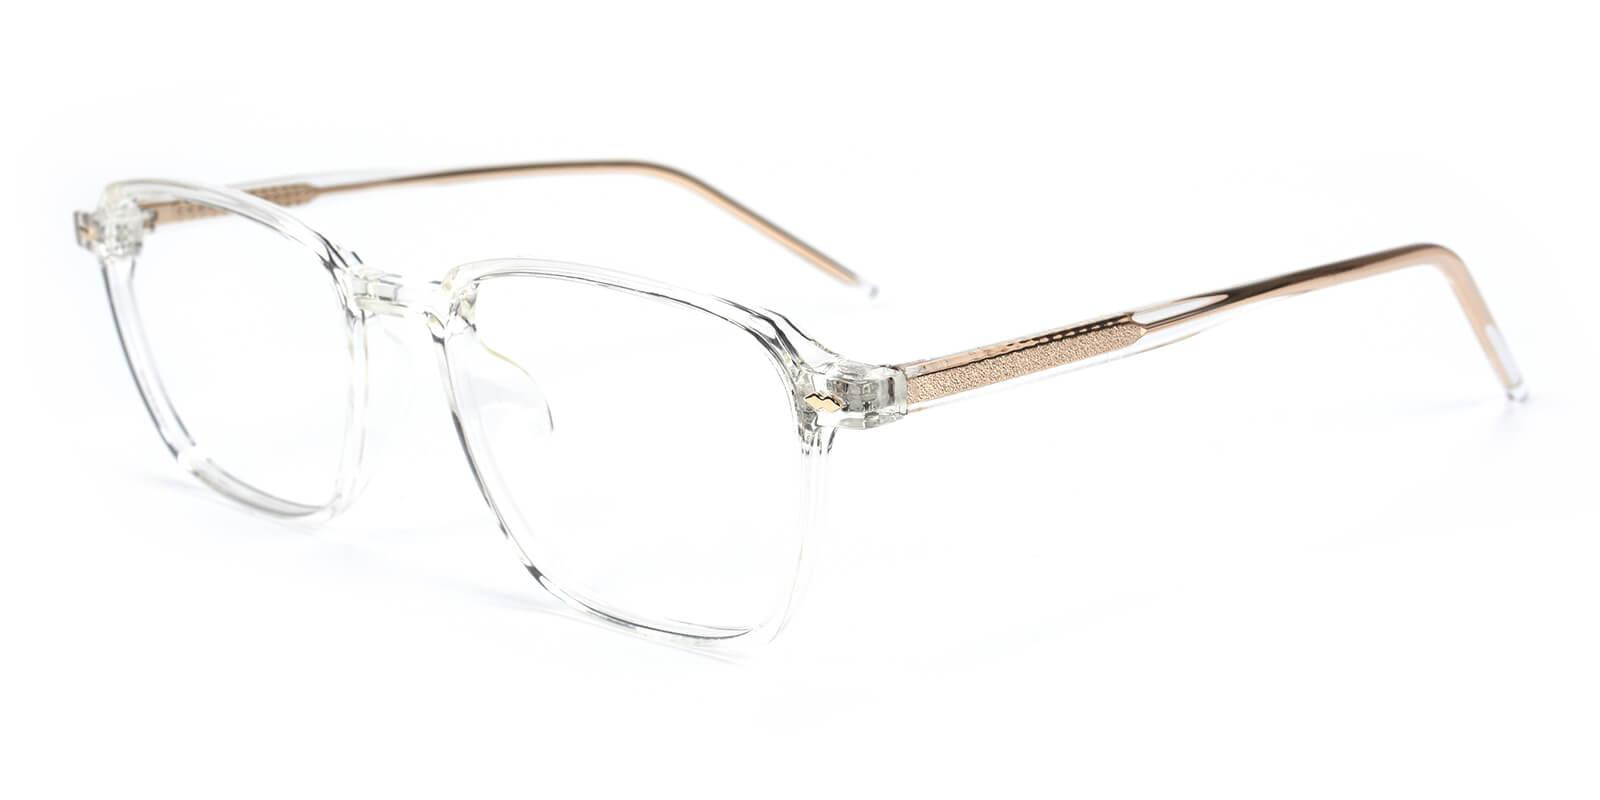 Rolita-Translucent-Square-Acetate / TR-Eyeglasses-additional1